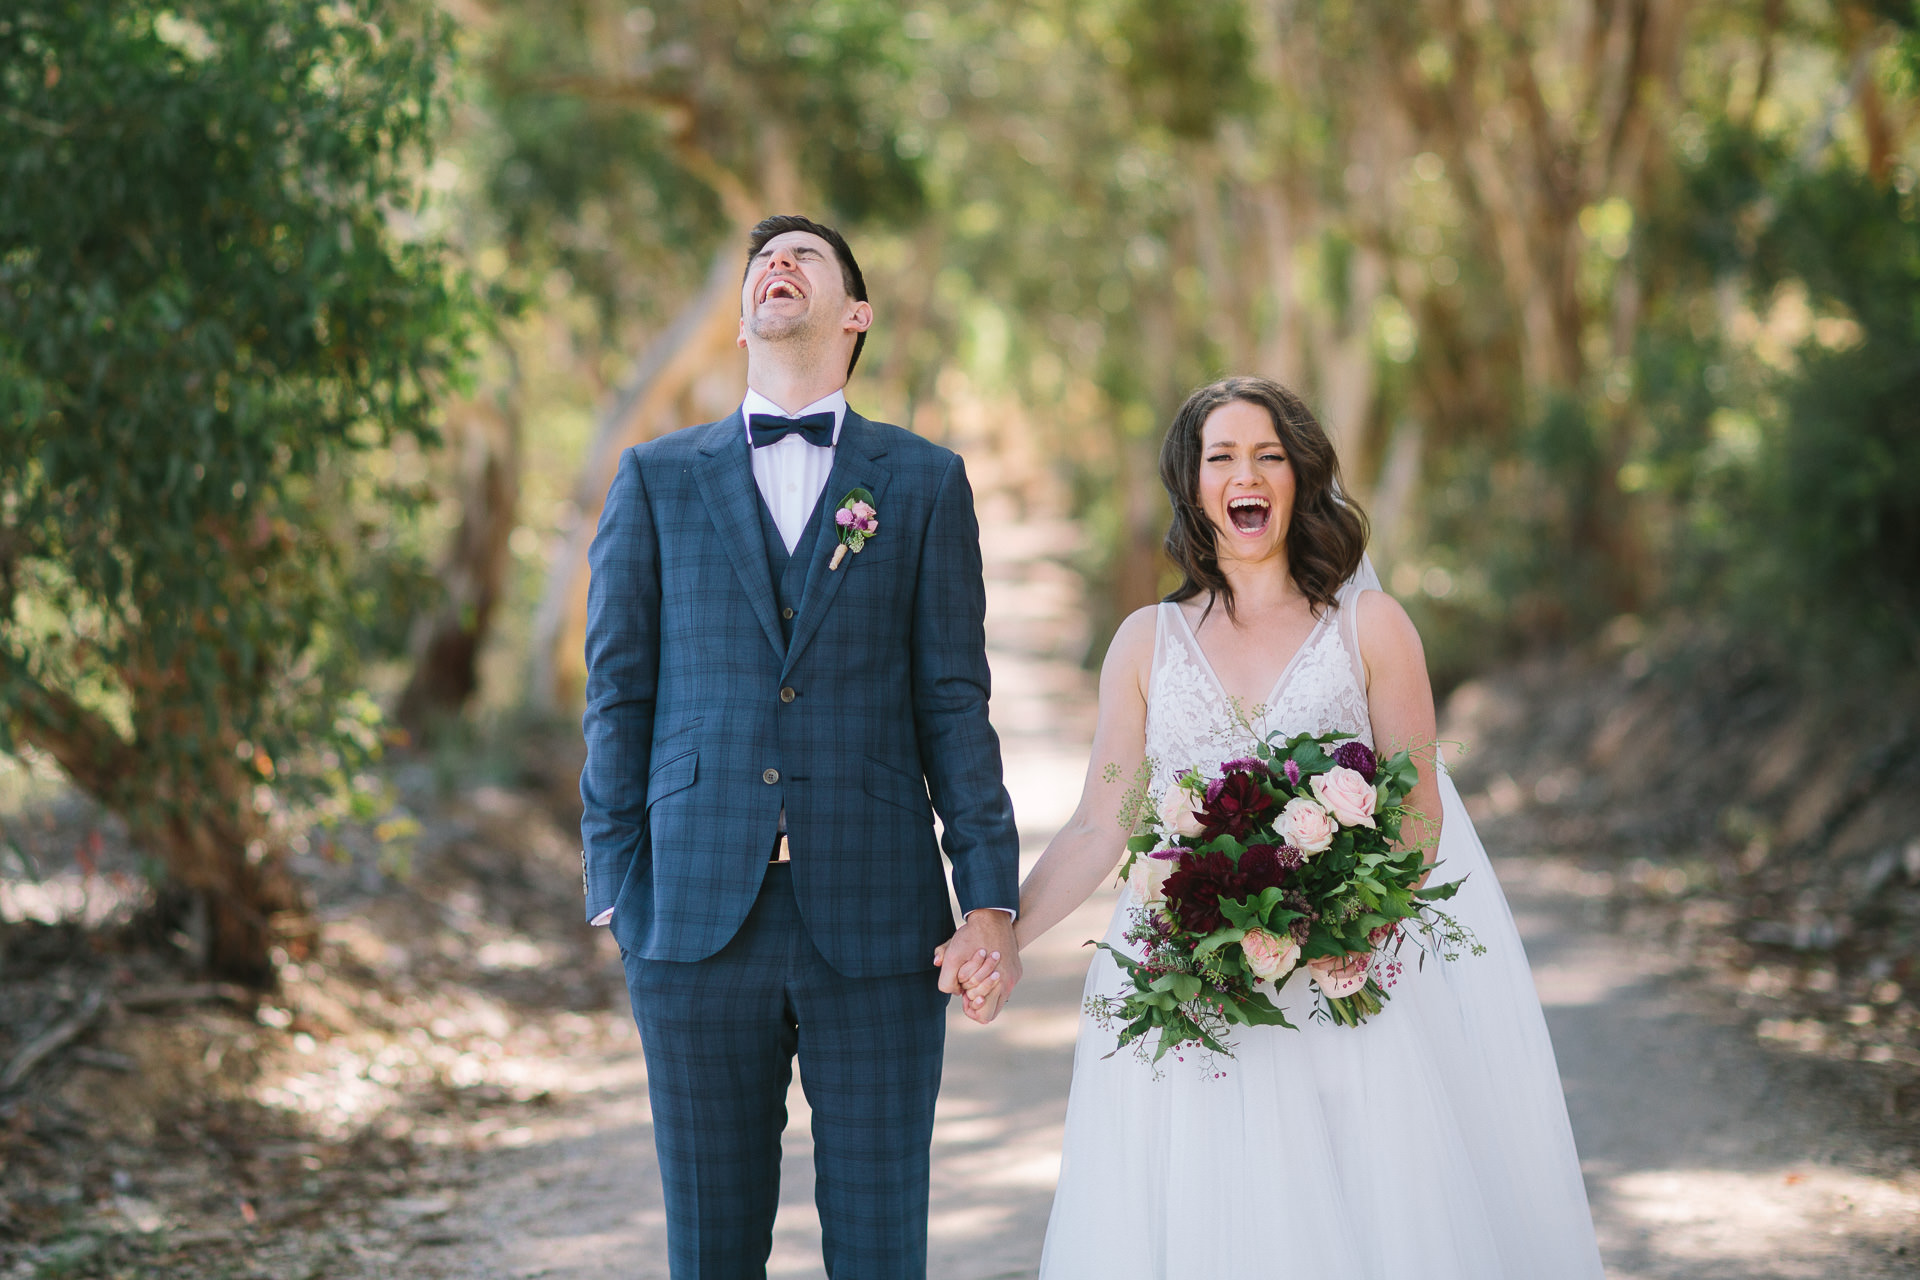 Relaxed bride and groom laugh with joy during wedding photos at Longview winery vineyard